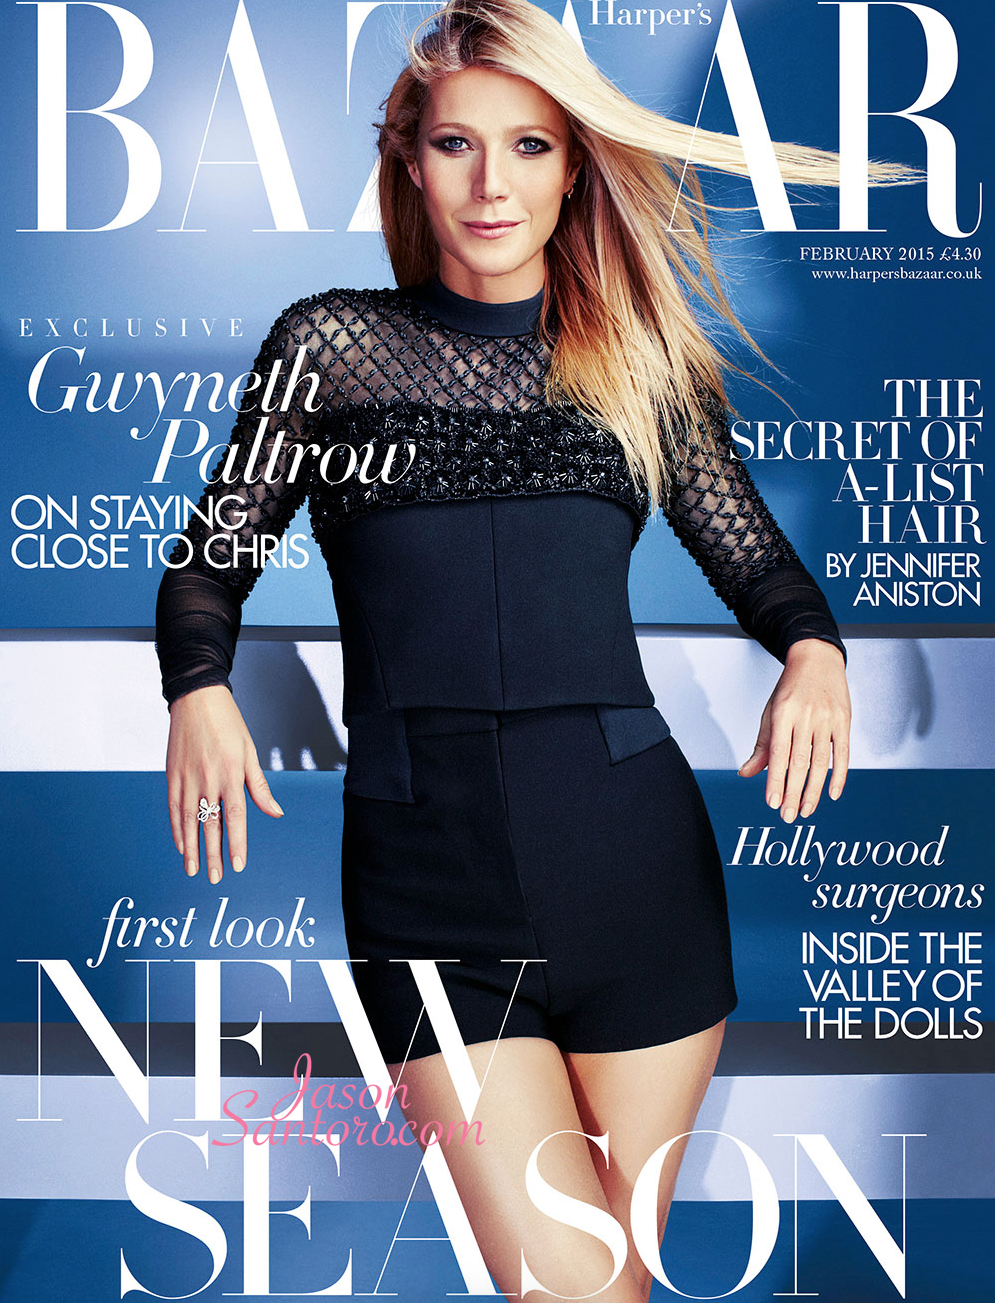 Gwyneth Paltrow covers Harpers Bazaar February 2015 issue